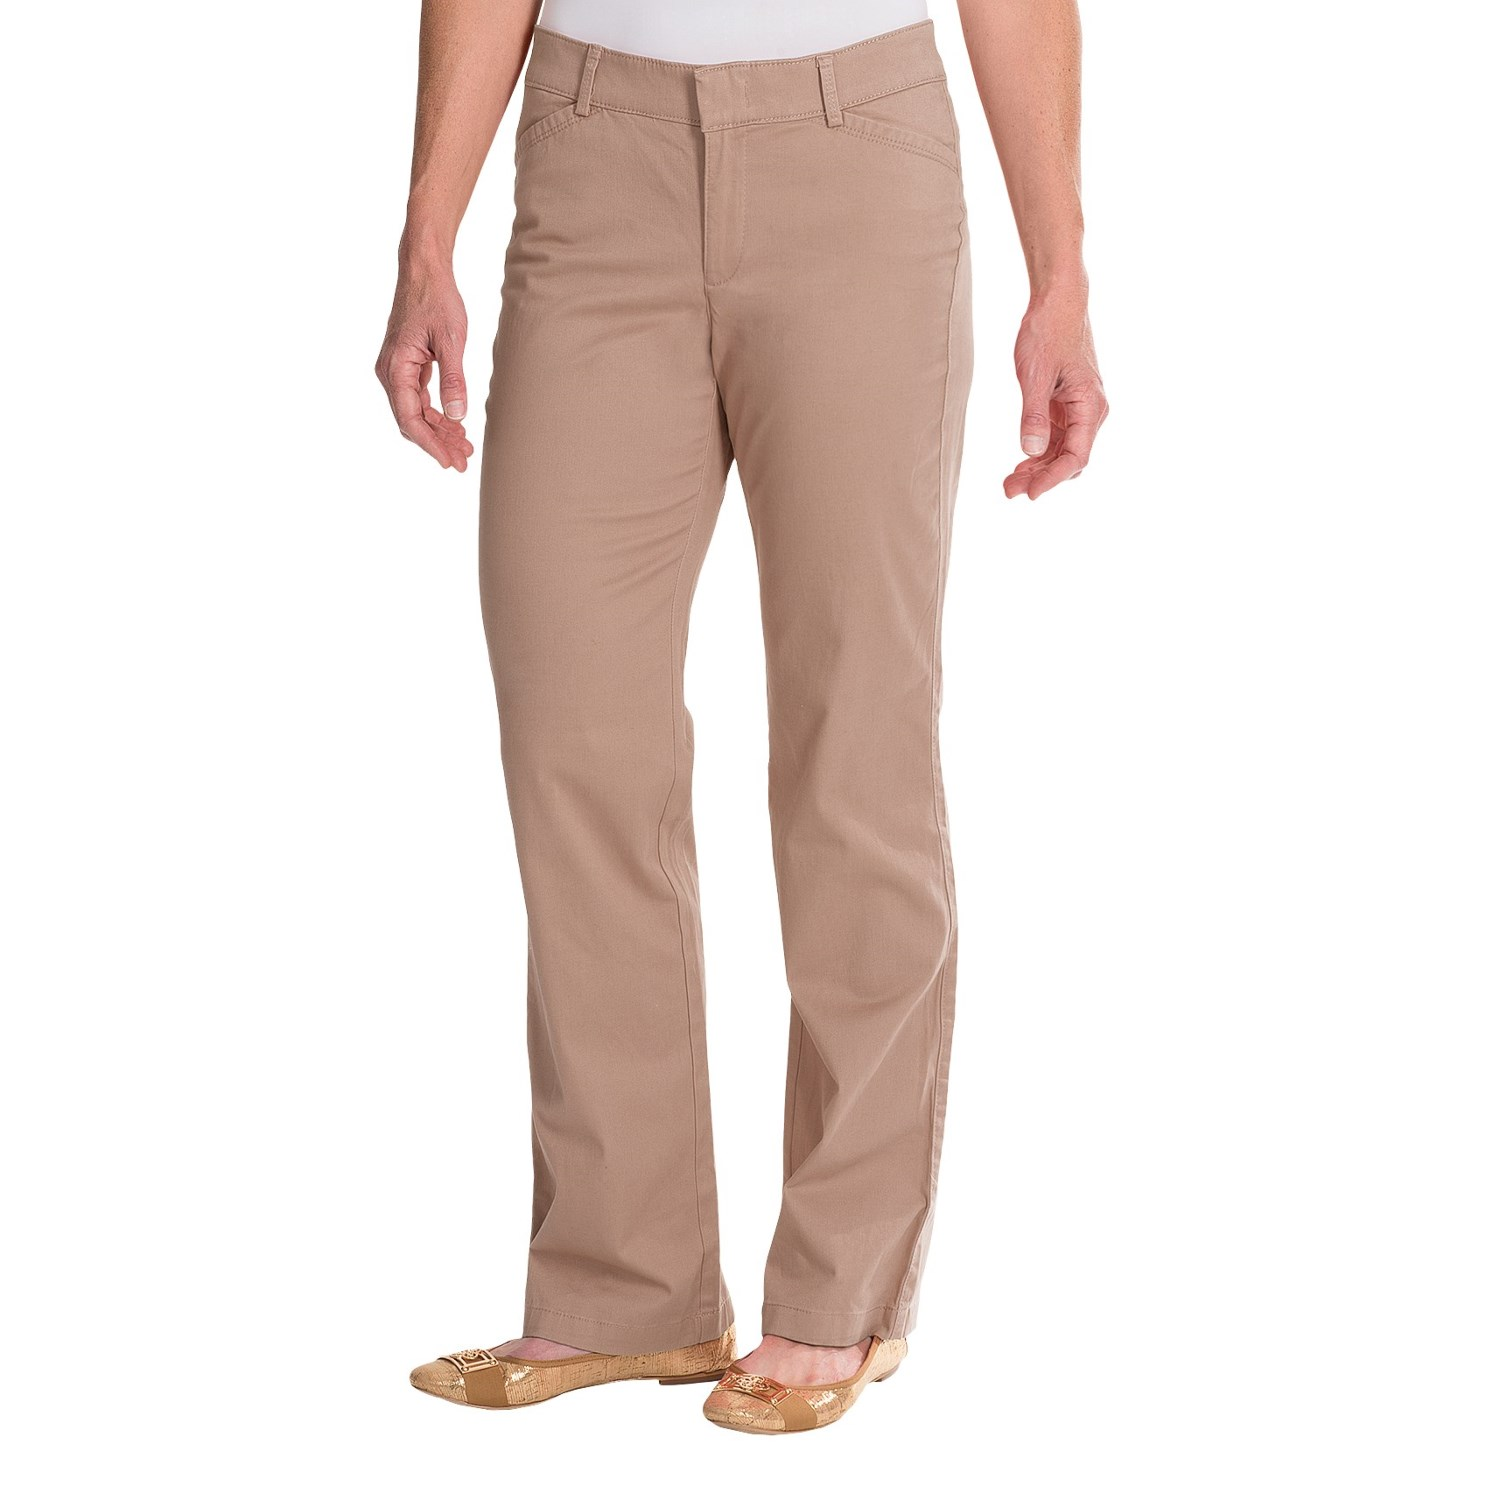 28 brilliant Khaki Color Pants Women u2013 playzoa.com